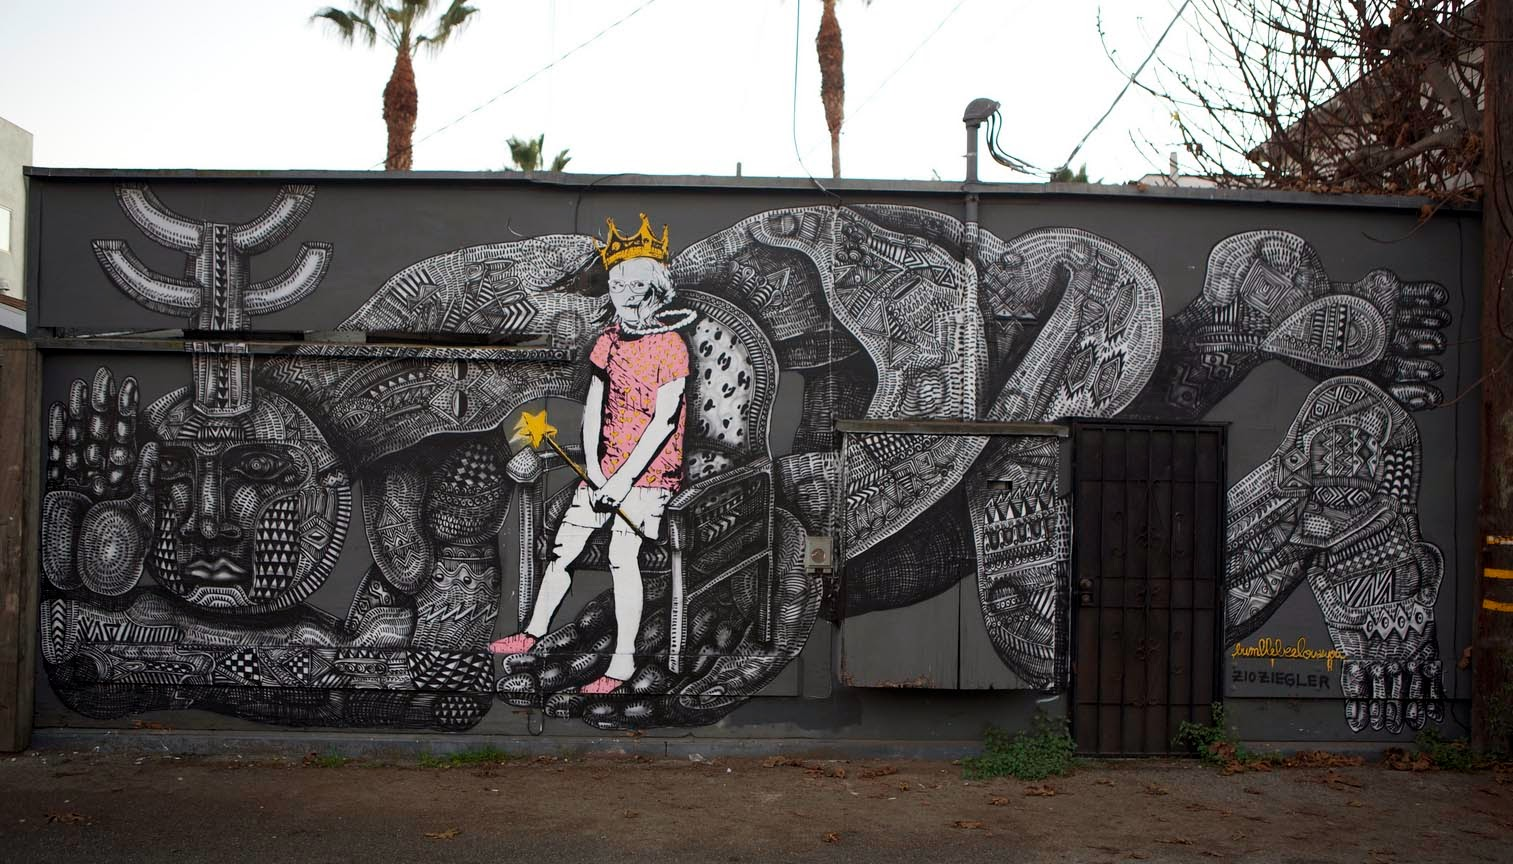 Branded Arts latest Street Art Collaboration with Zio Ziegler and Bumblebee in Venice, California. 1